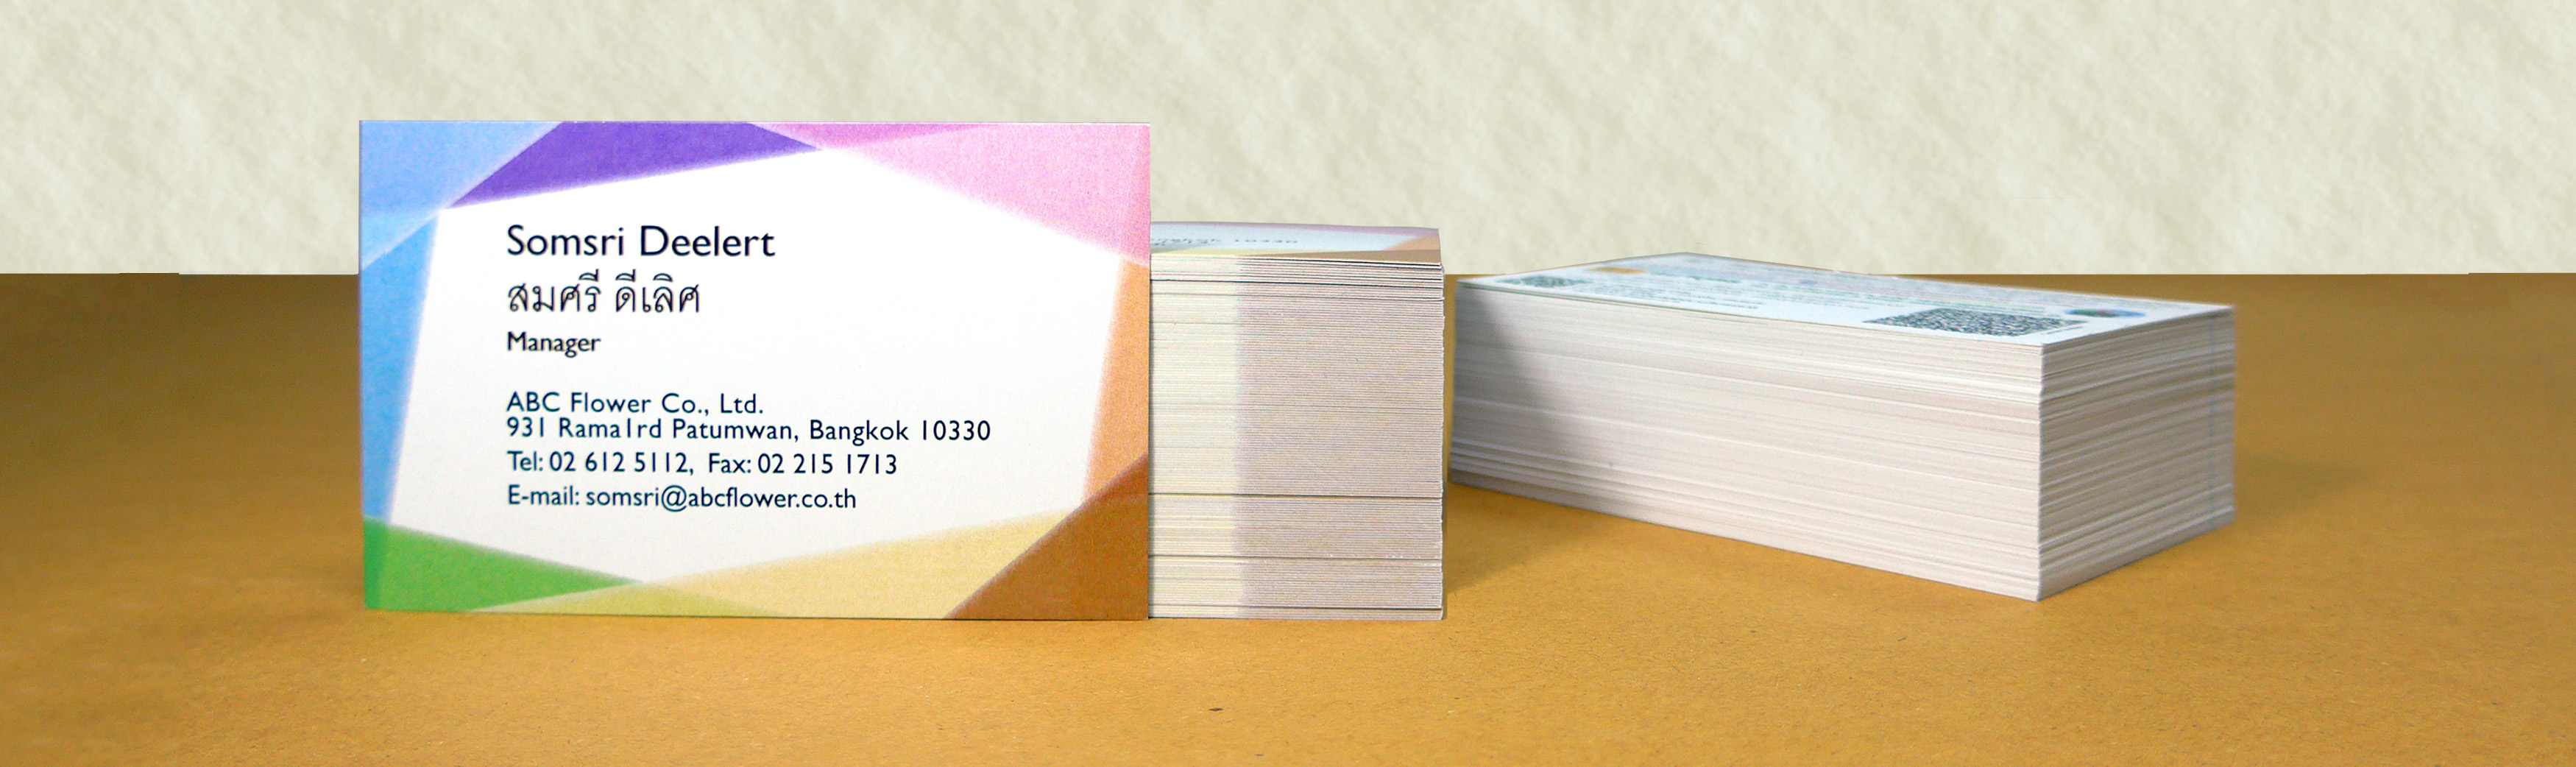 Business Cards / Name Cards